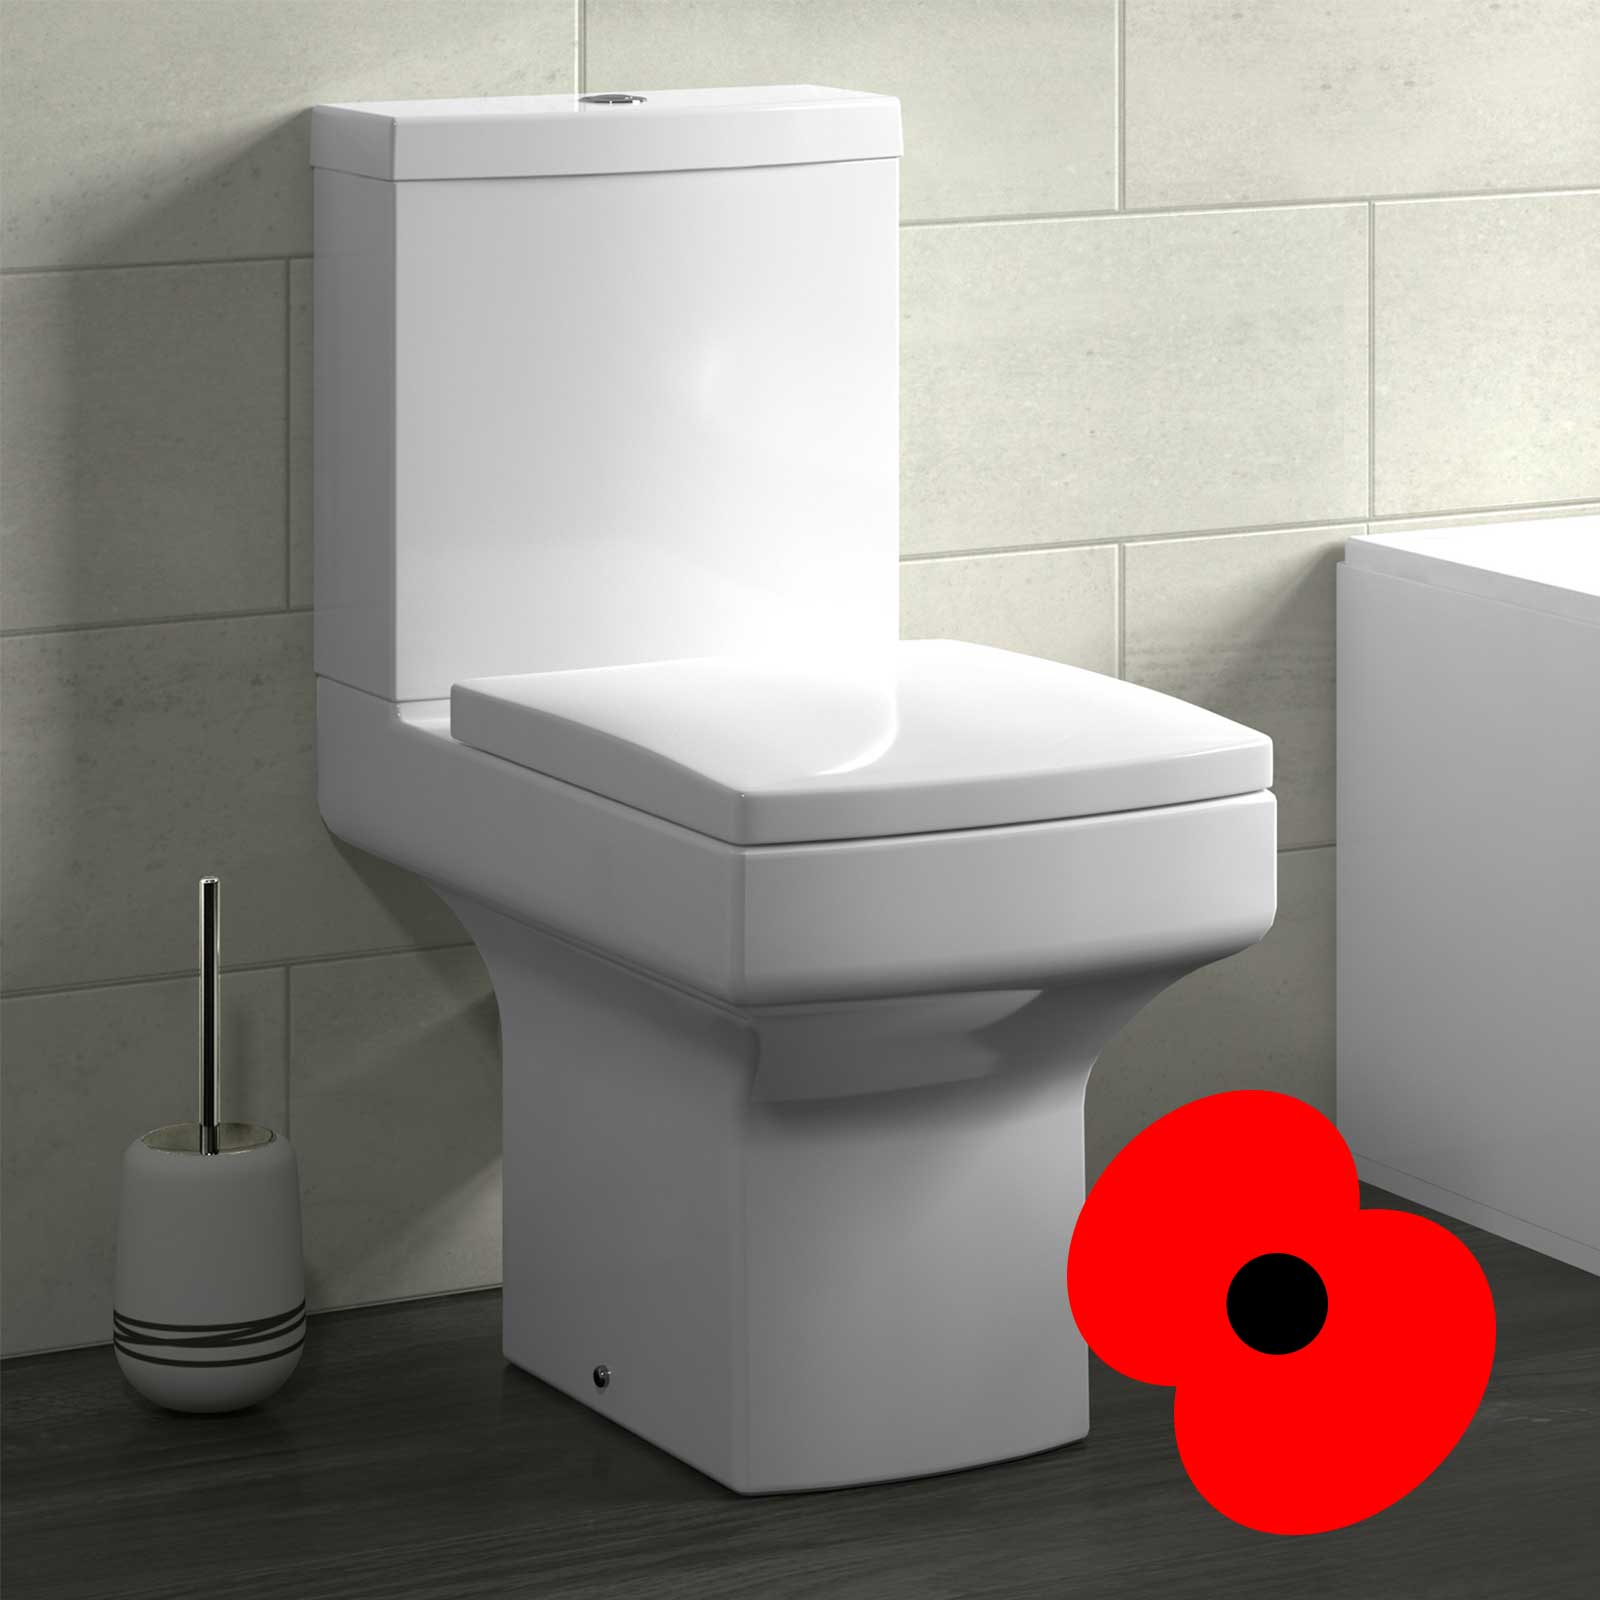 Introducing the Maisy Lou Modern Close Coupled Toilet & Soft Close Toilet Seat